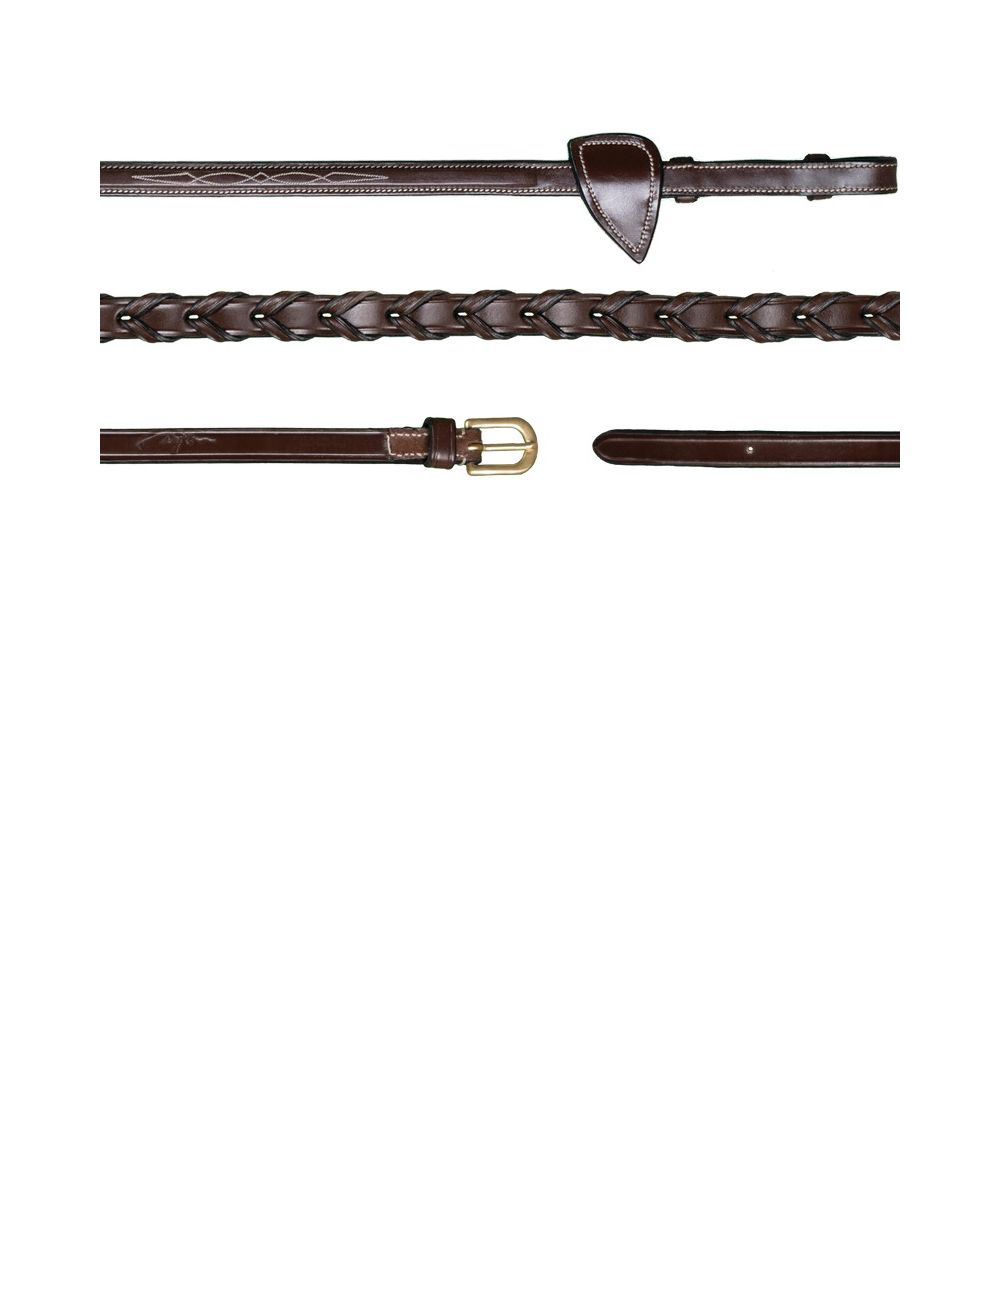 Dyon D Collection Leather Laced Reins - 2